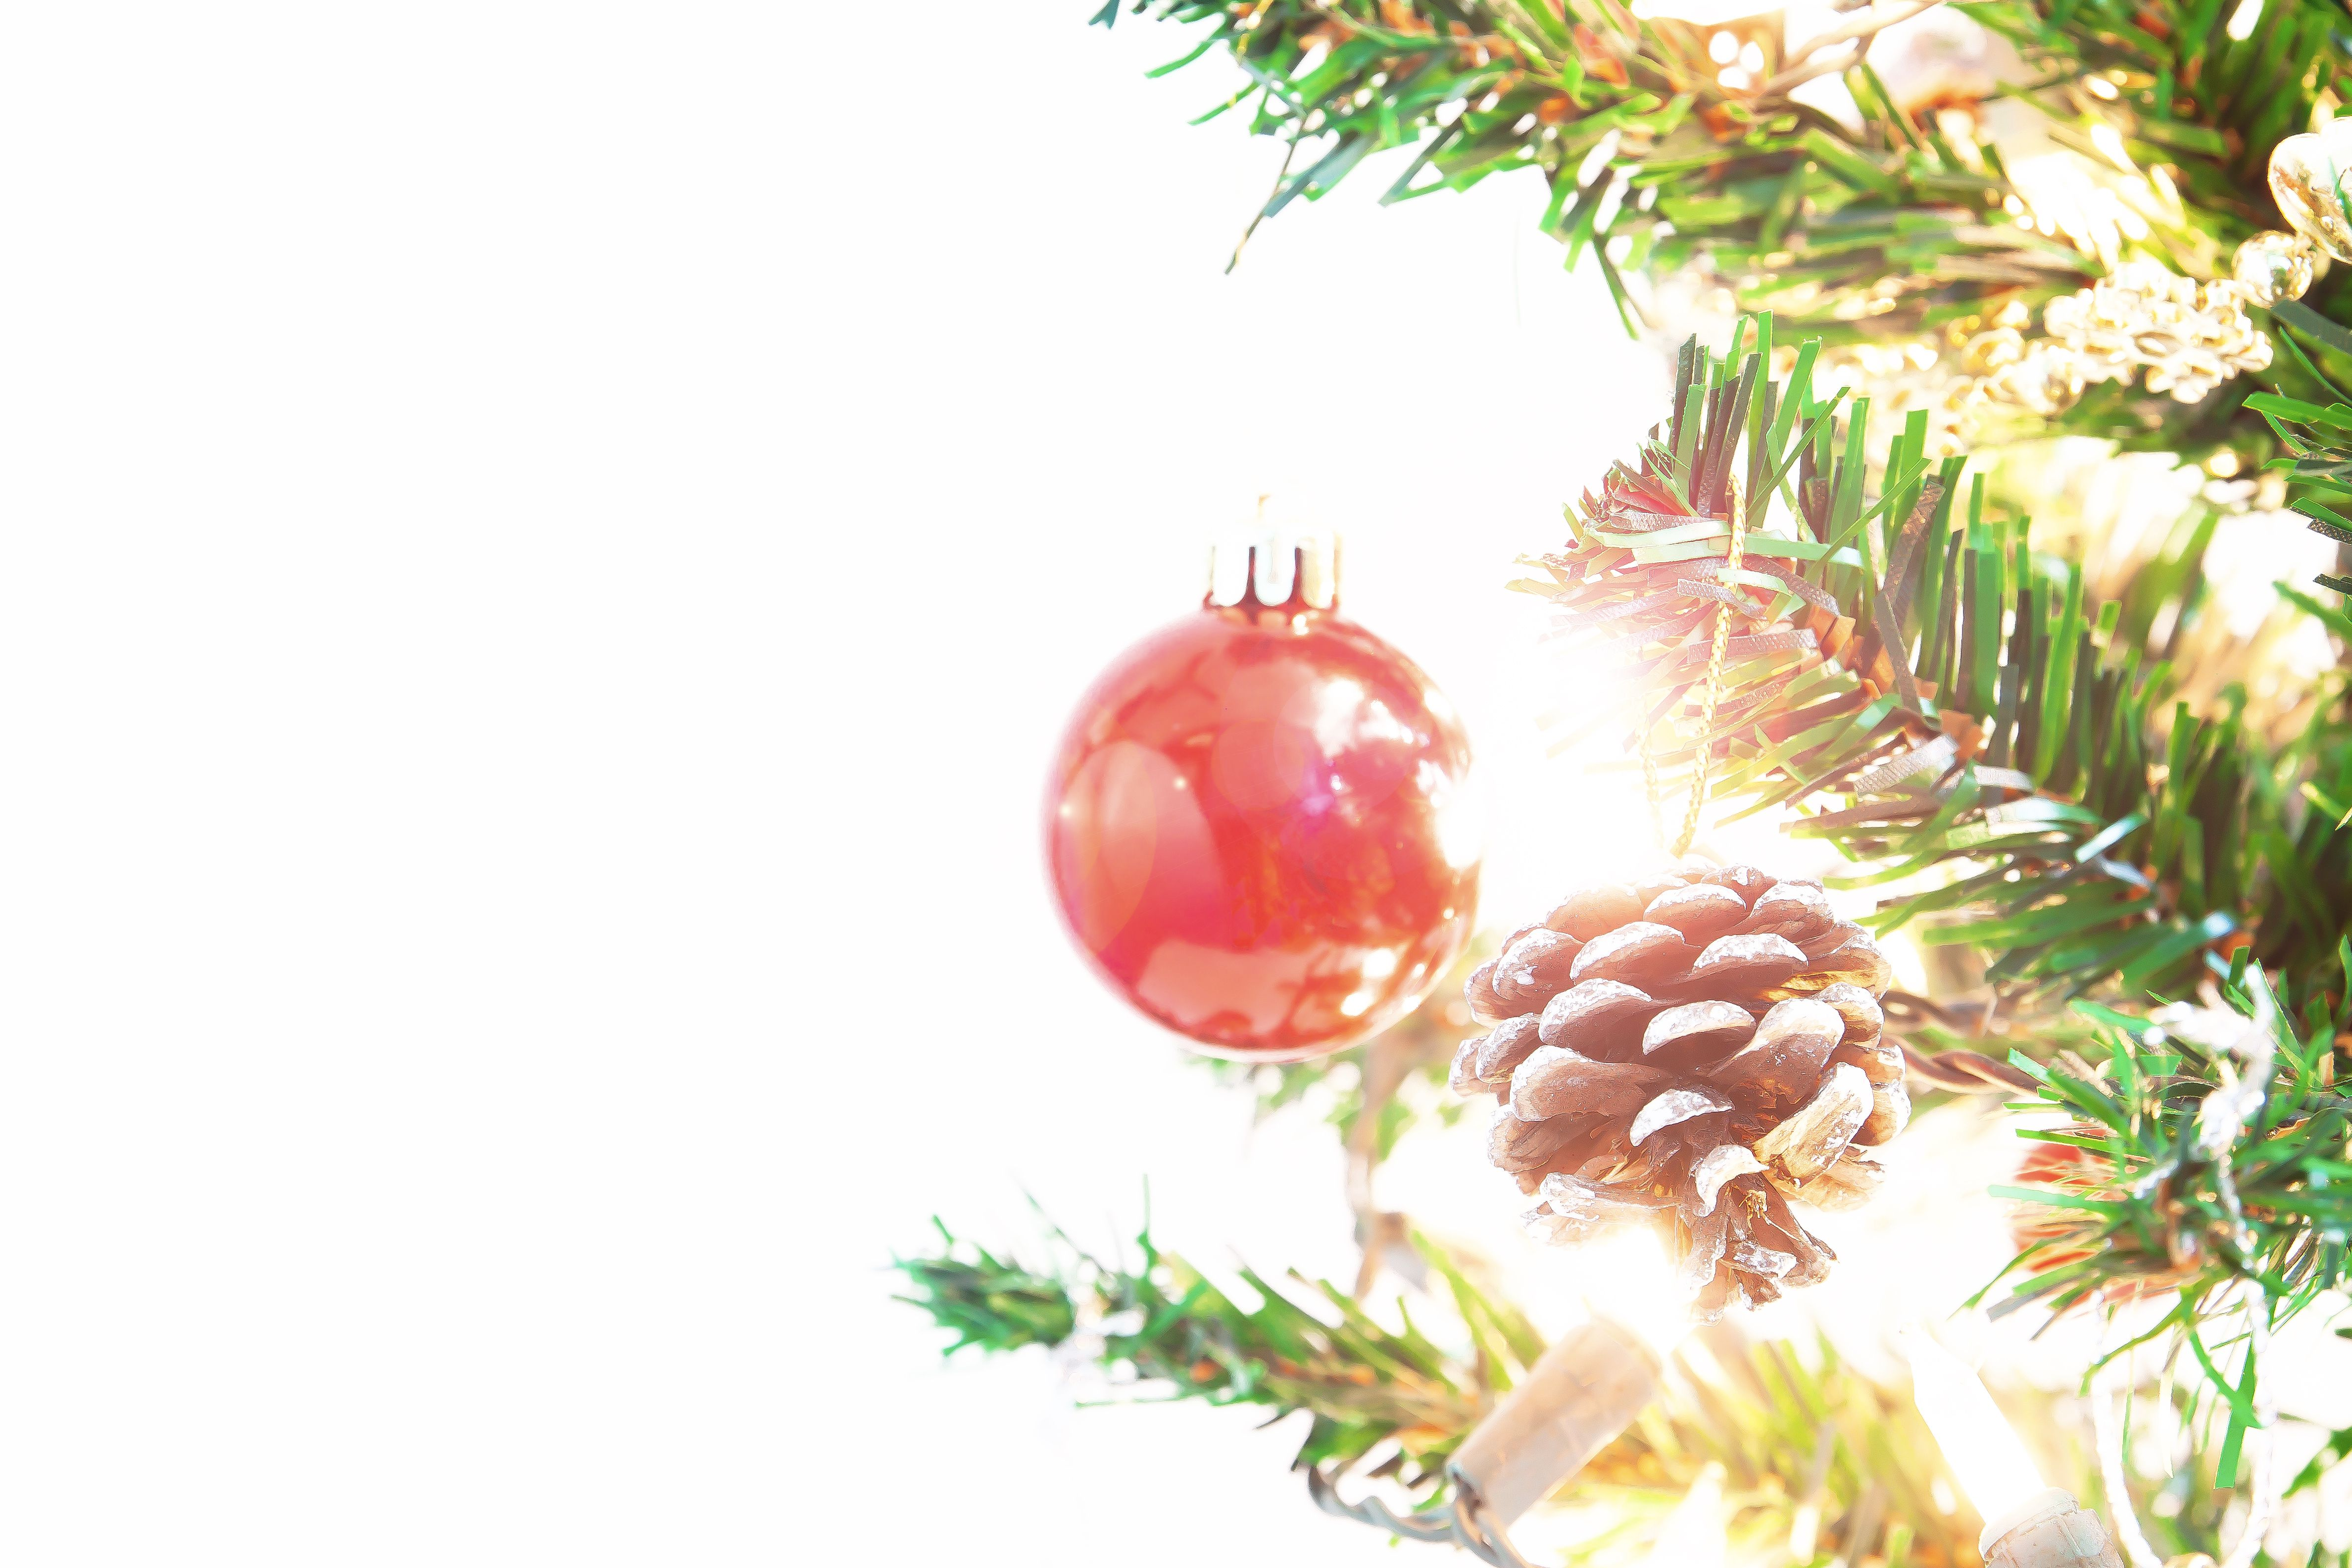 Can Pagans Have Christmas Trees?